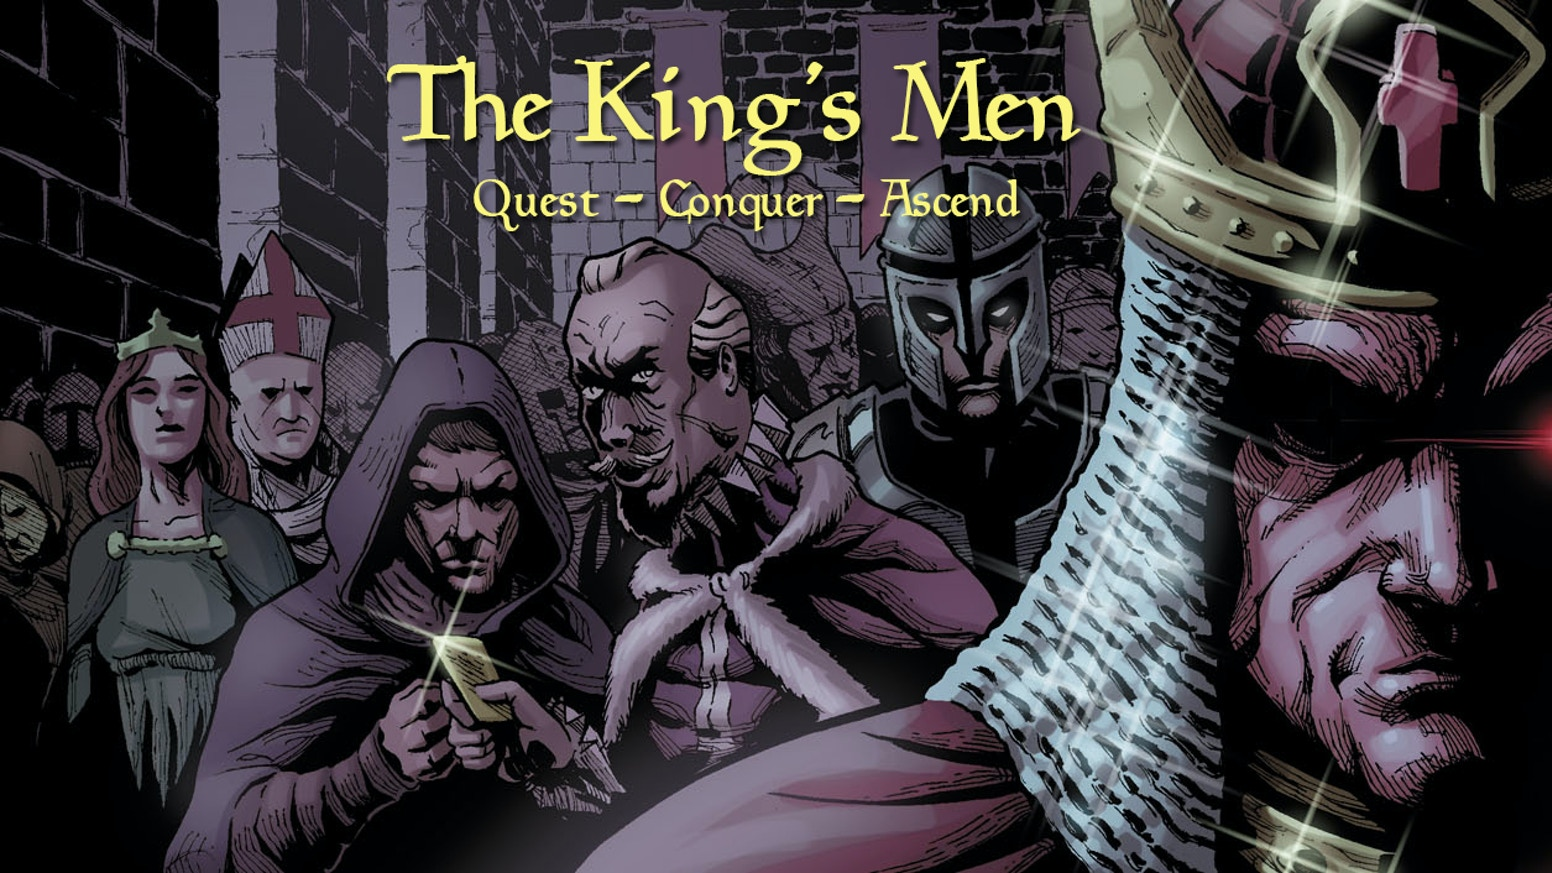 Fight mythological creatures. Gain honor. Recruit powerful allies. Build a thriving merchant class. Ascend to the throne! The Kingsmen!